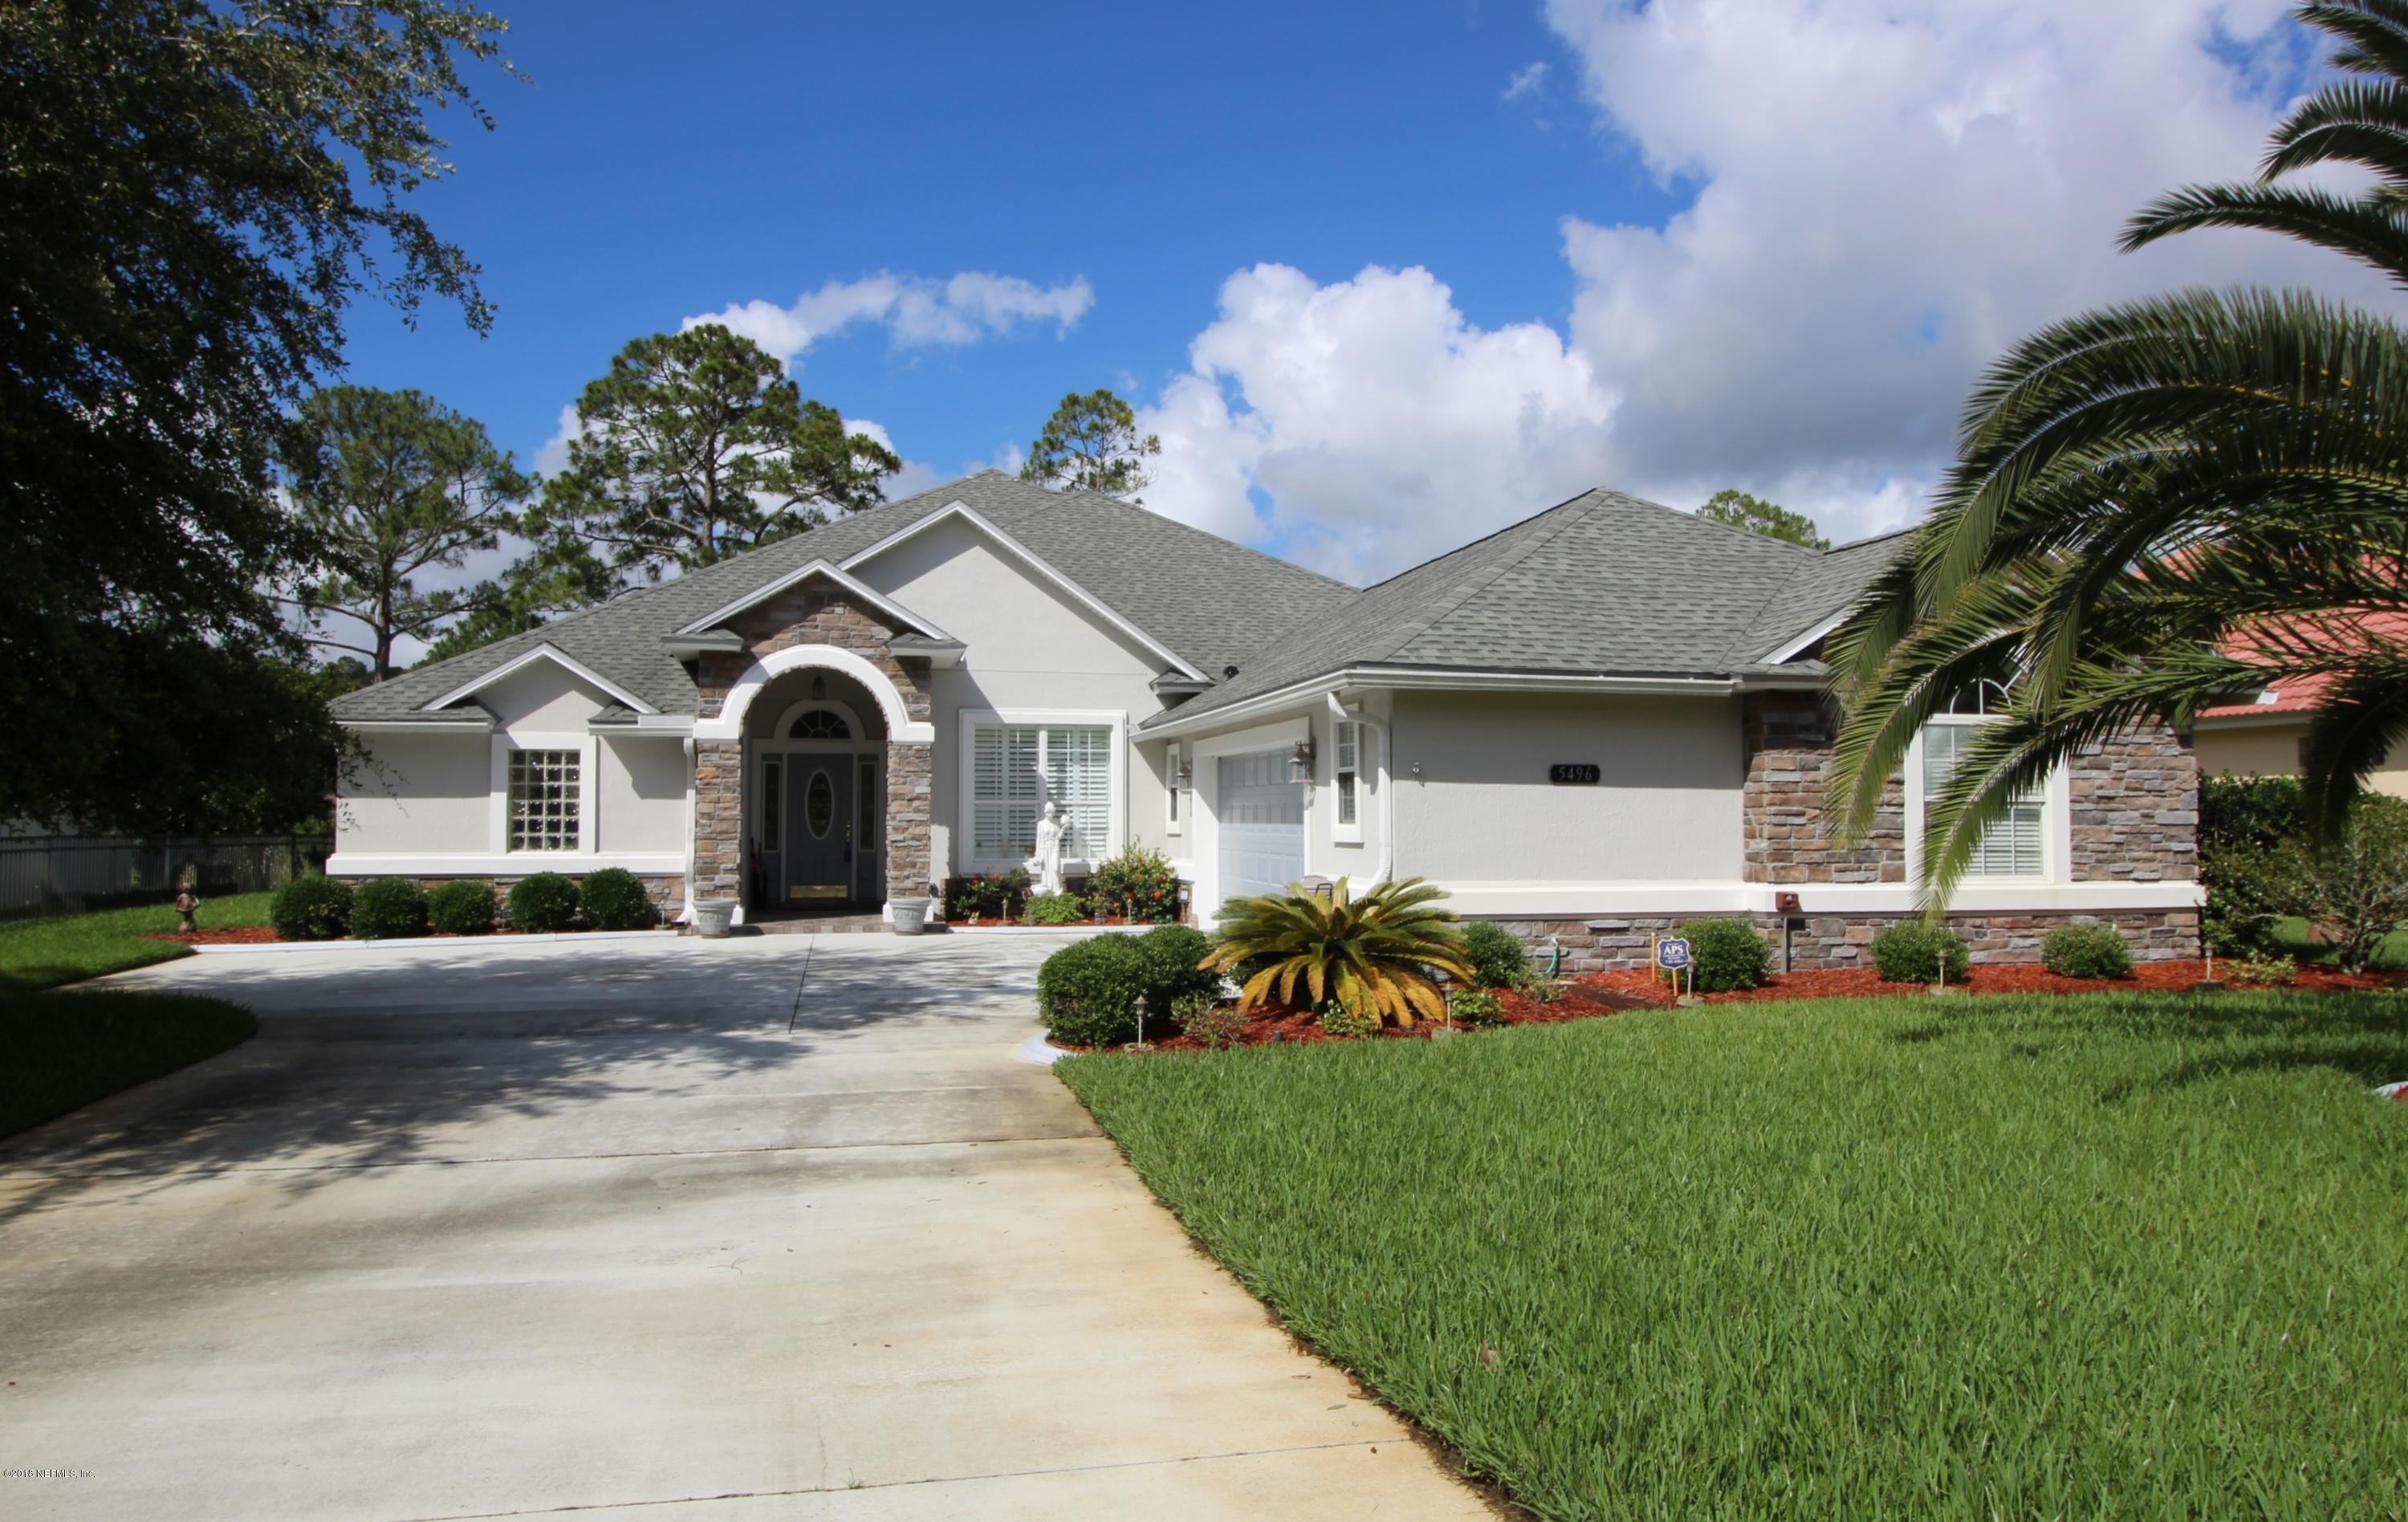 5496 CYPRESS LINKS, ELKTON, FLORIDA 32033, 4 Bedrooms Bedrooms, ,3 BathroomsBathrooms,Residential - single family,For sale,CYPRESS LINKS,937998